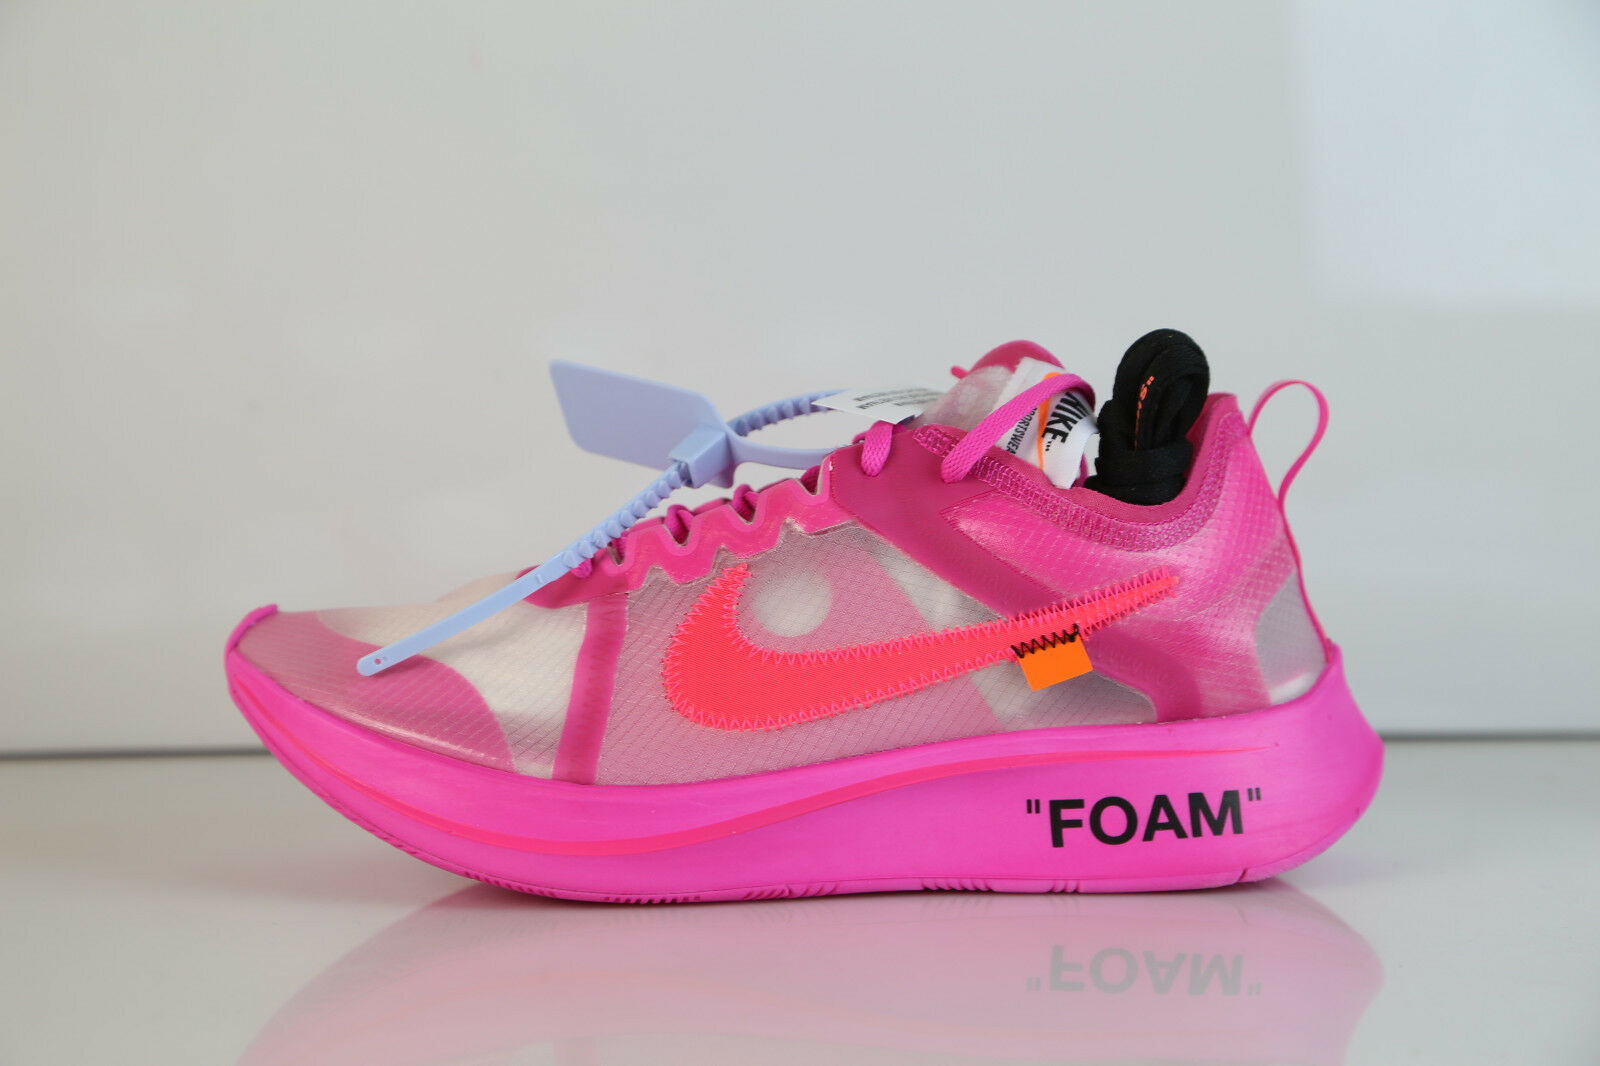 Nike Off-White Virgil Abloh The Ten Zoom Fly Tulip Pink AJ4588-600 5-13 ow